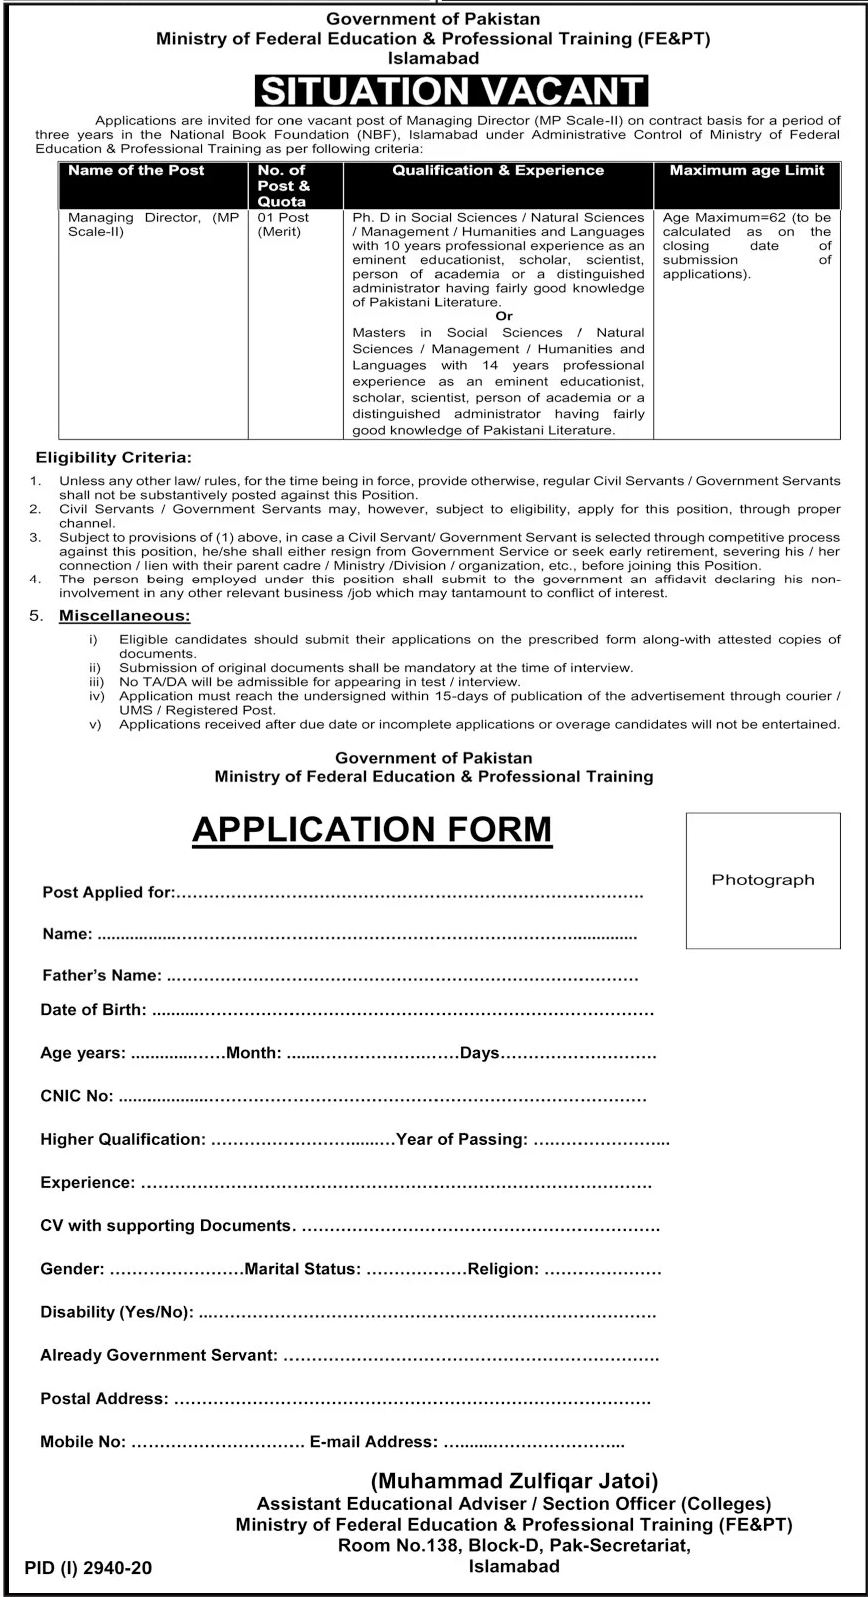 Ministry of Federal Education & Professional Training FE&PT Jobs December 2020